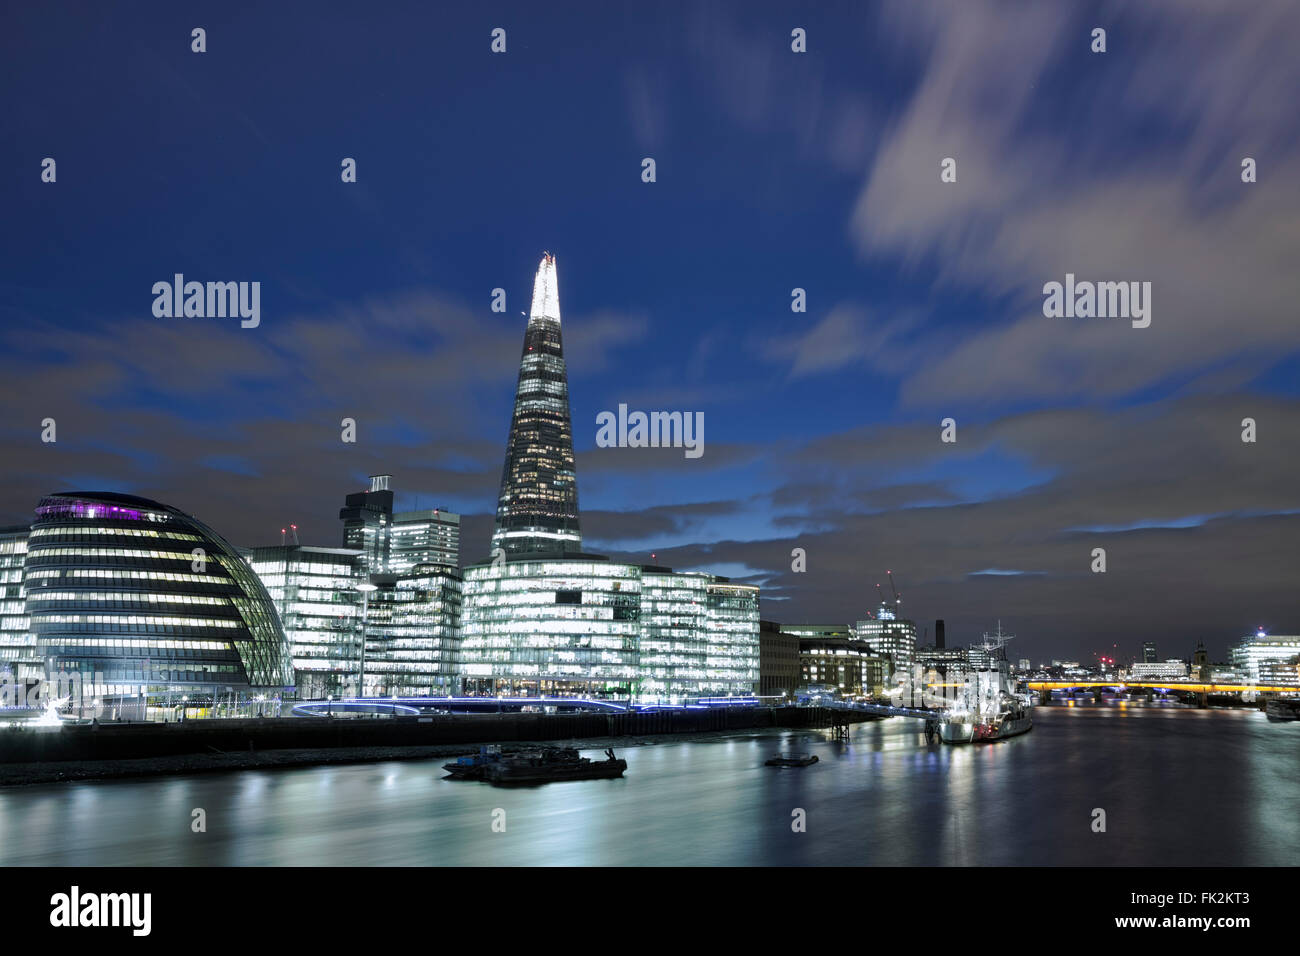 View of the South Bank of the Thames in Southwark at night showing City Hall and the Shard - Stock Image